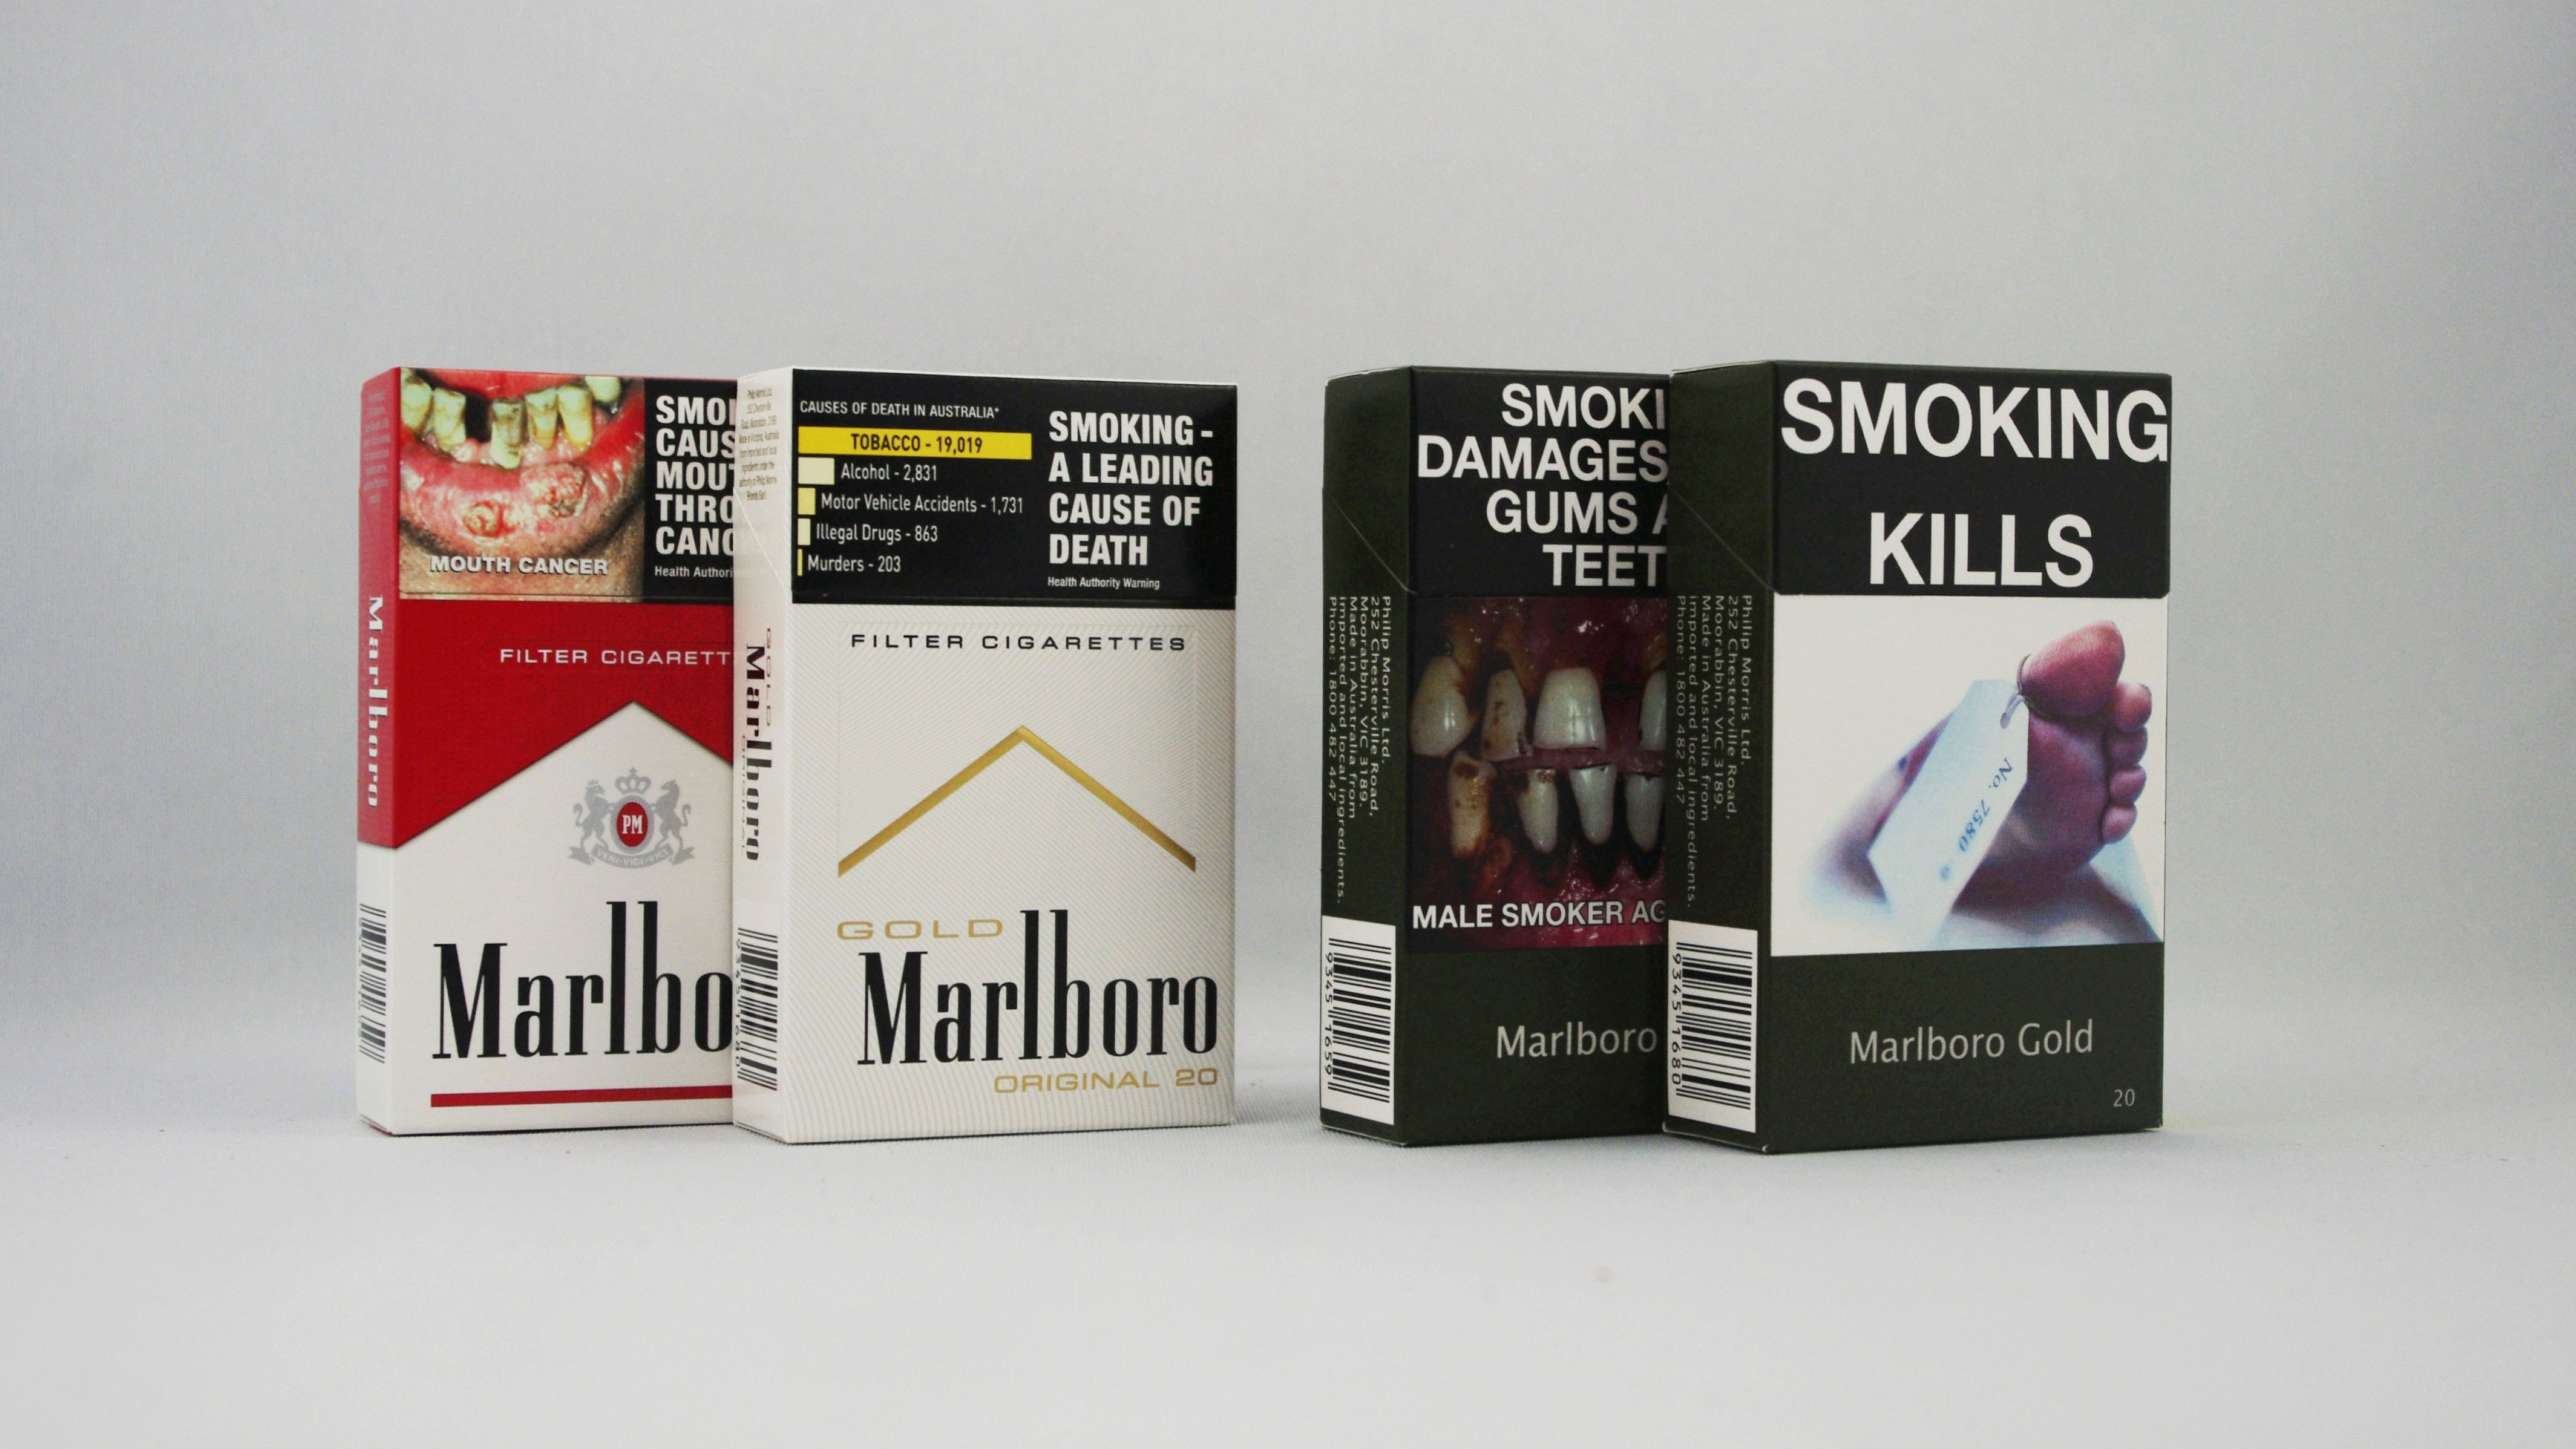 Australian cigarette packets in 2012 and 2014